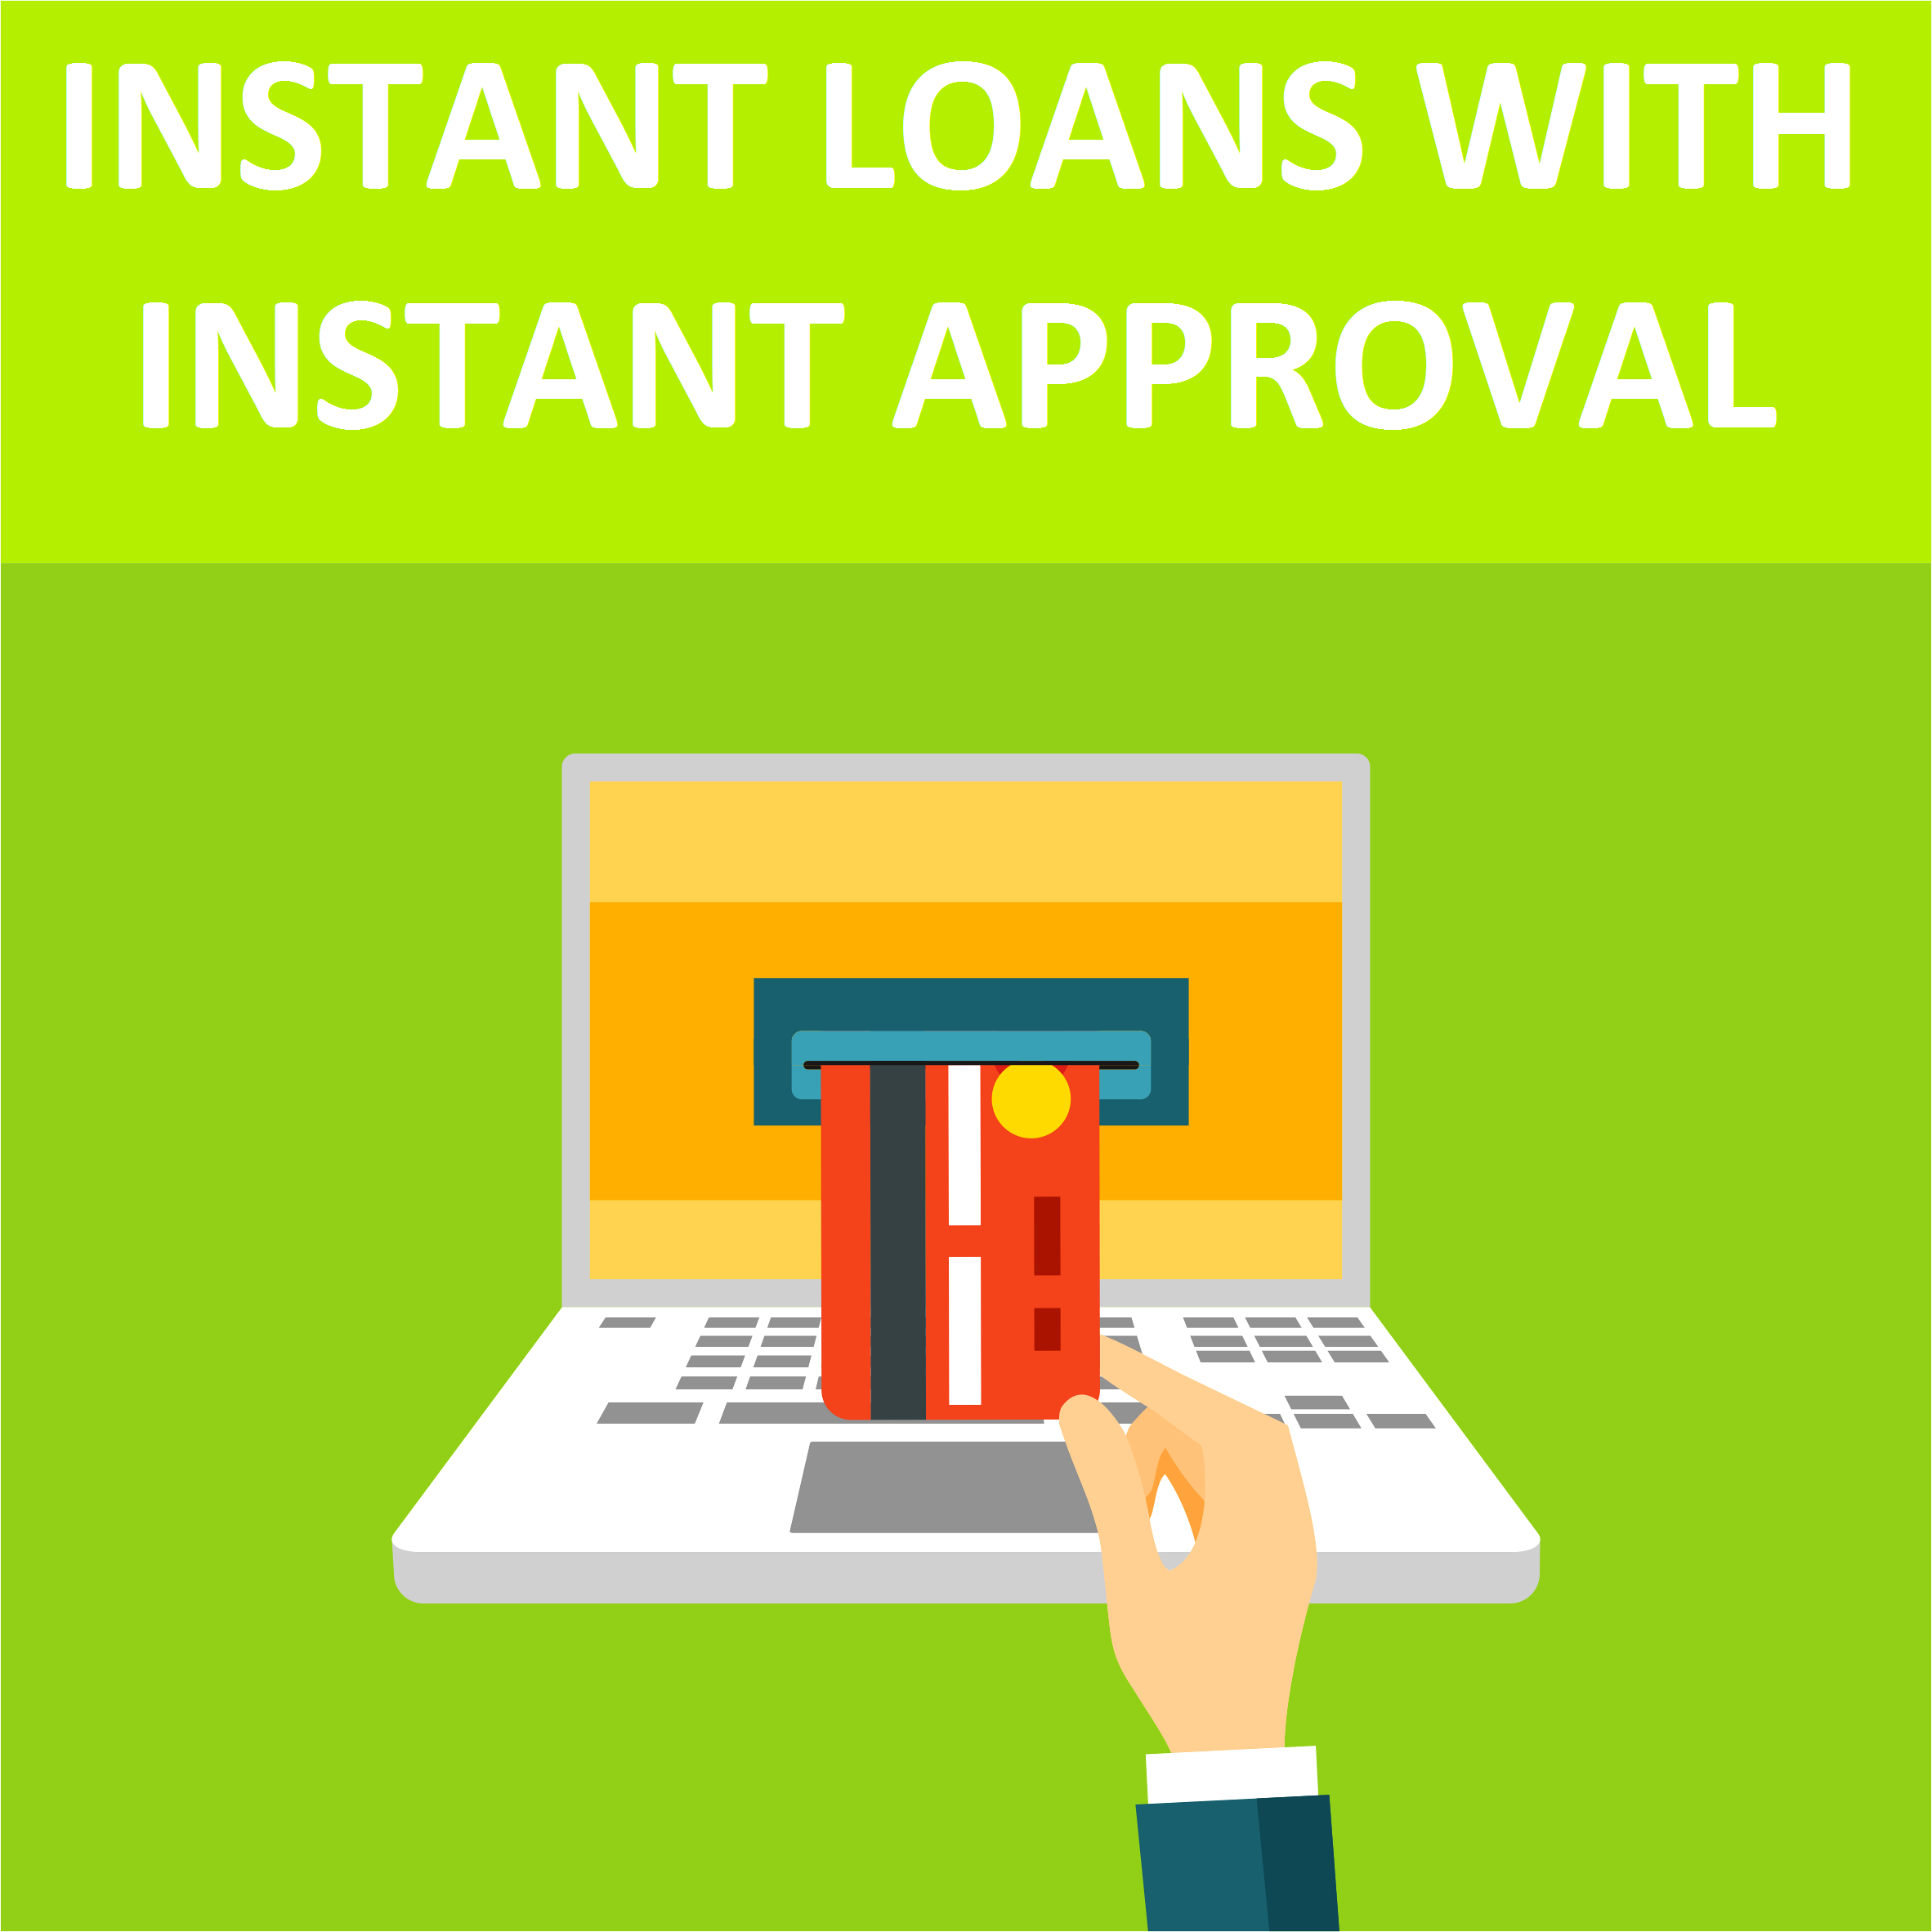 Instant Loan With Instant Approval